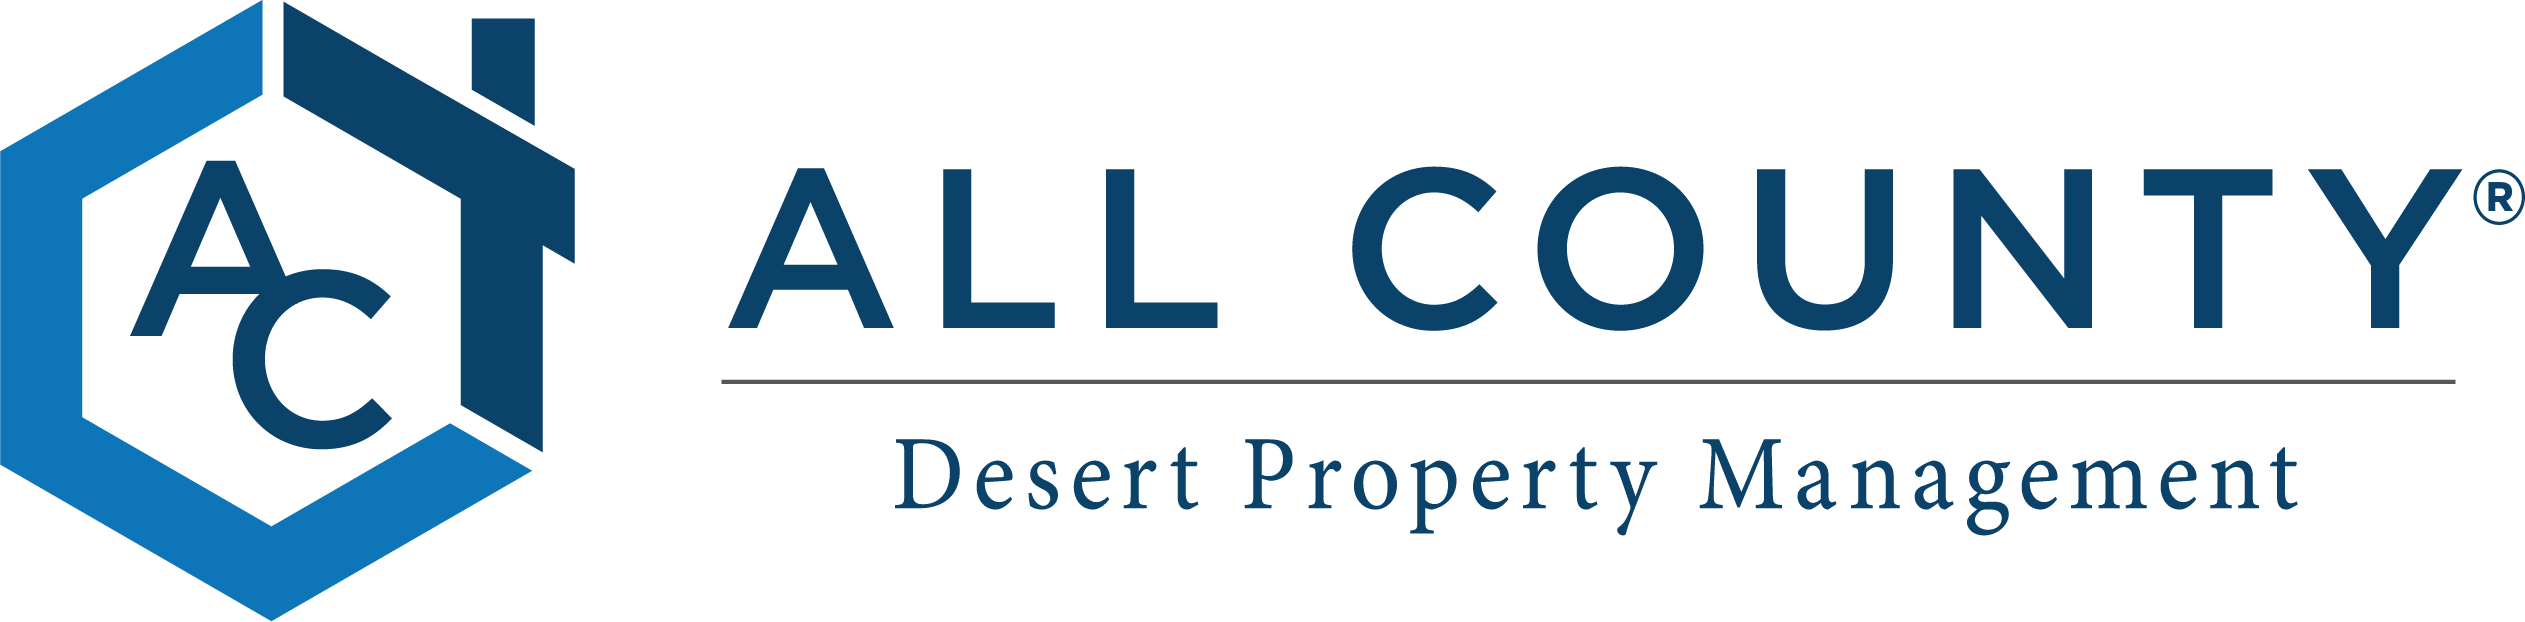 All County Desert Property Management